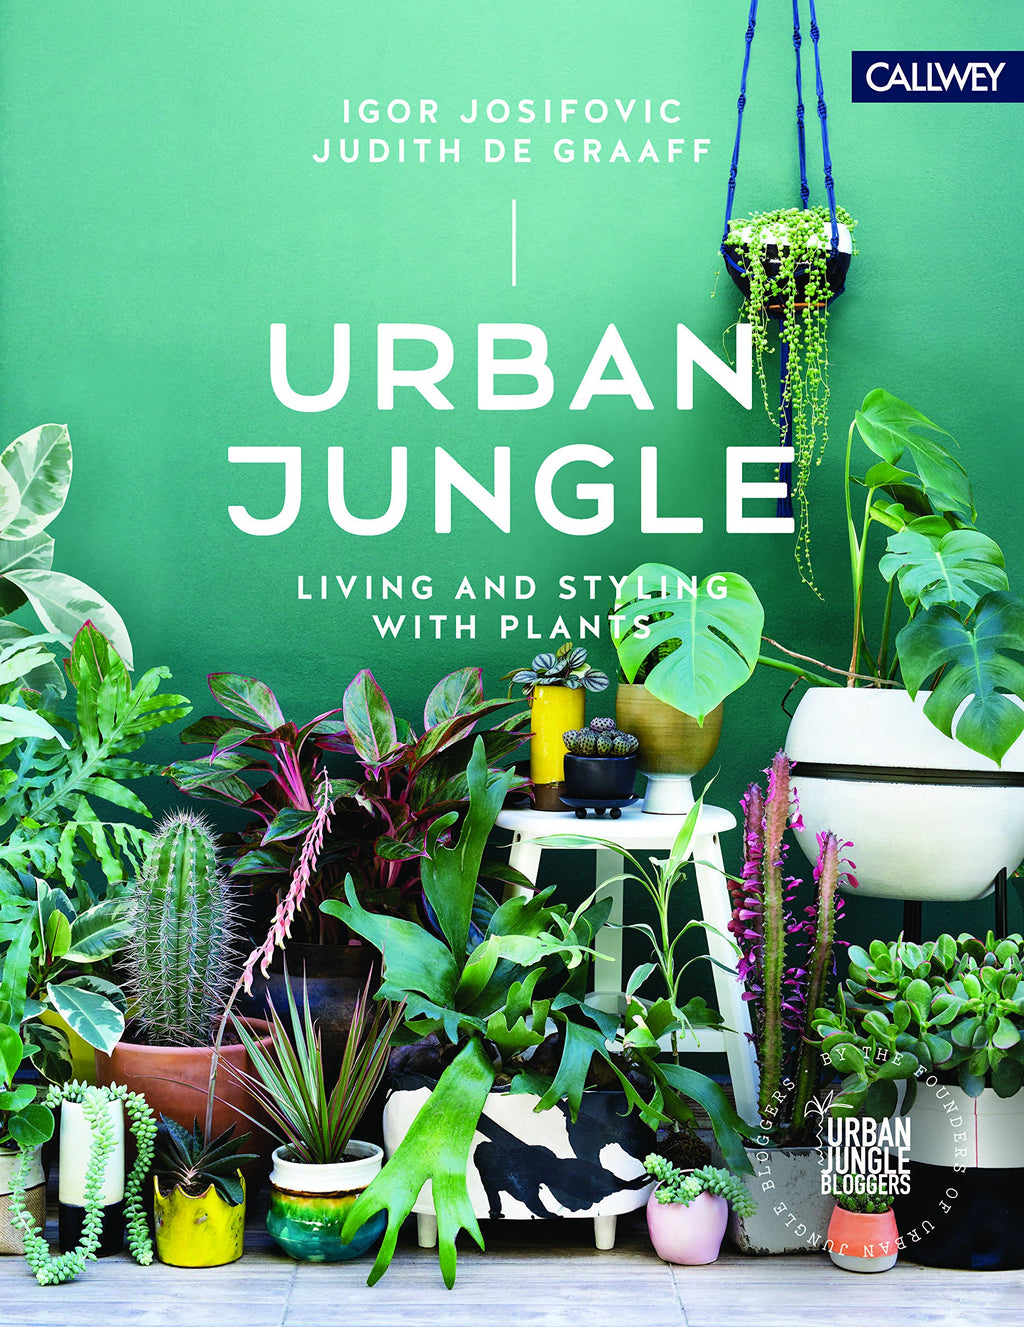 Urban Jungle by Igor Josifovic & Judith de Graaff